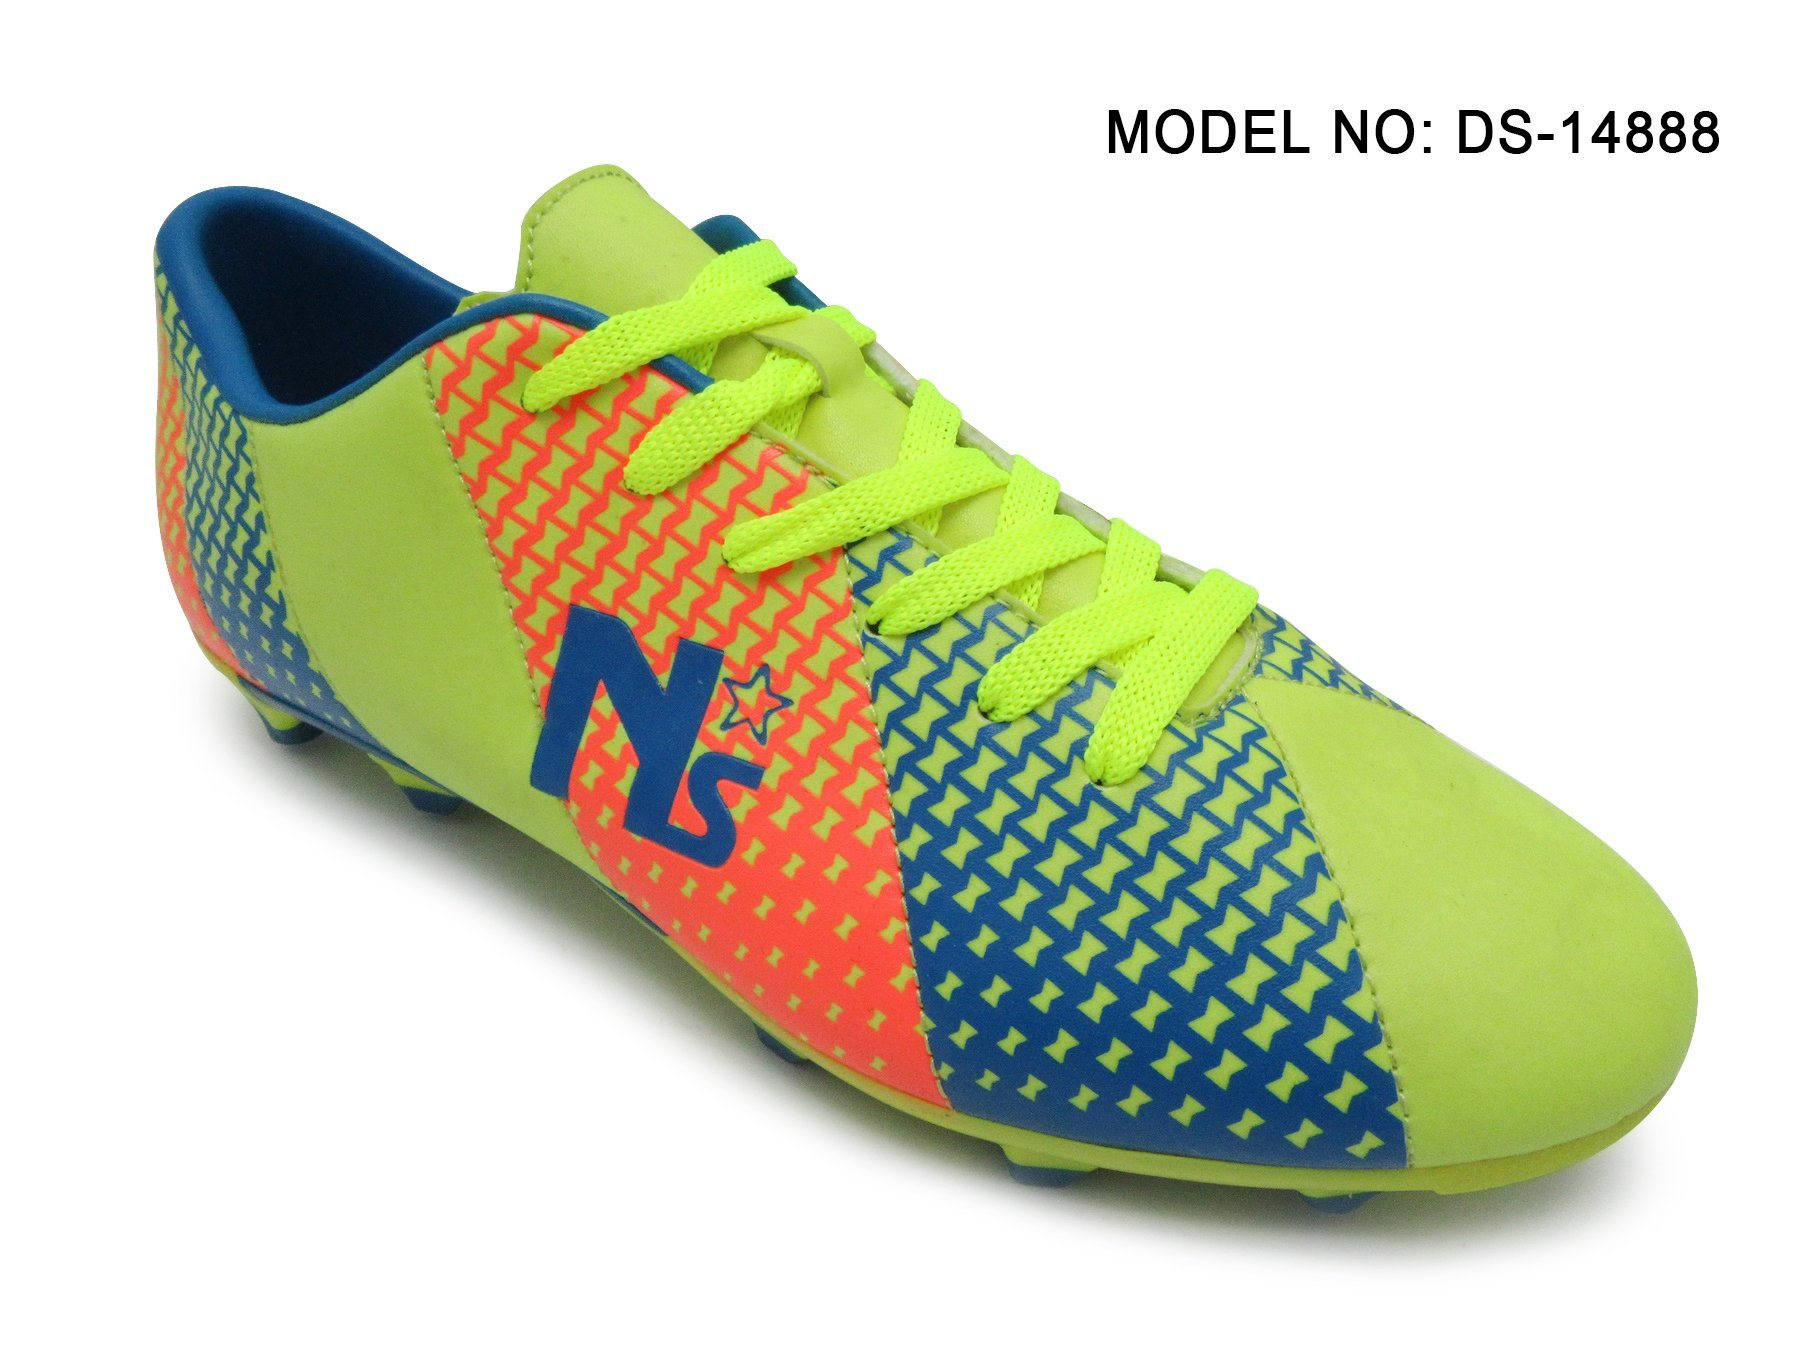 87a27ec8d China 2018 Outdoor Indoor Soccer Shoes Football Shoes for Men Women - China  Soccer Shoes, Football Soccer Shoes